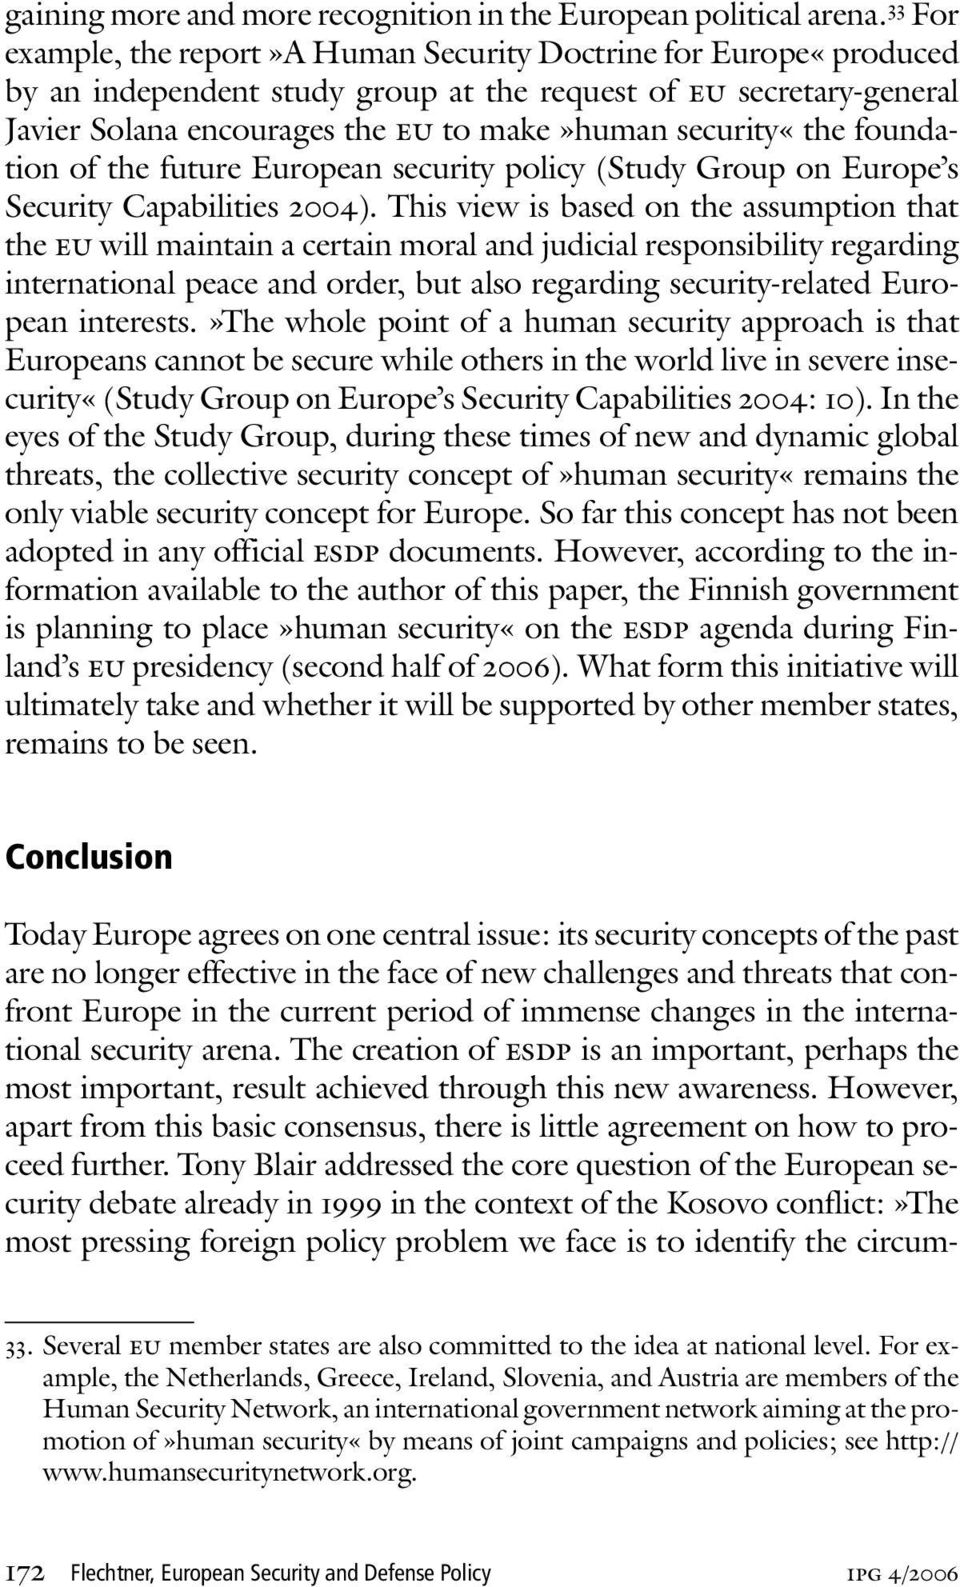 security«the foundation of the future European security policy (Study Group on Europe s Security Capabilities 2004).